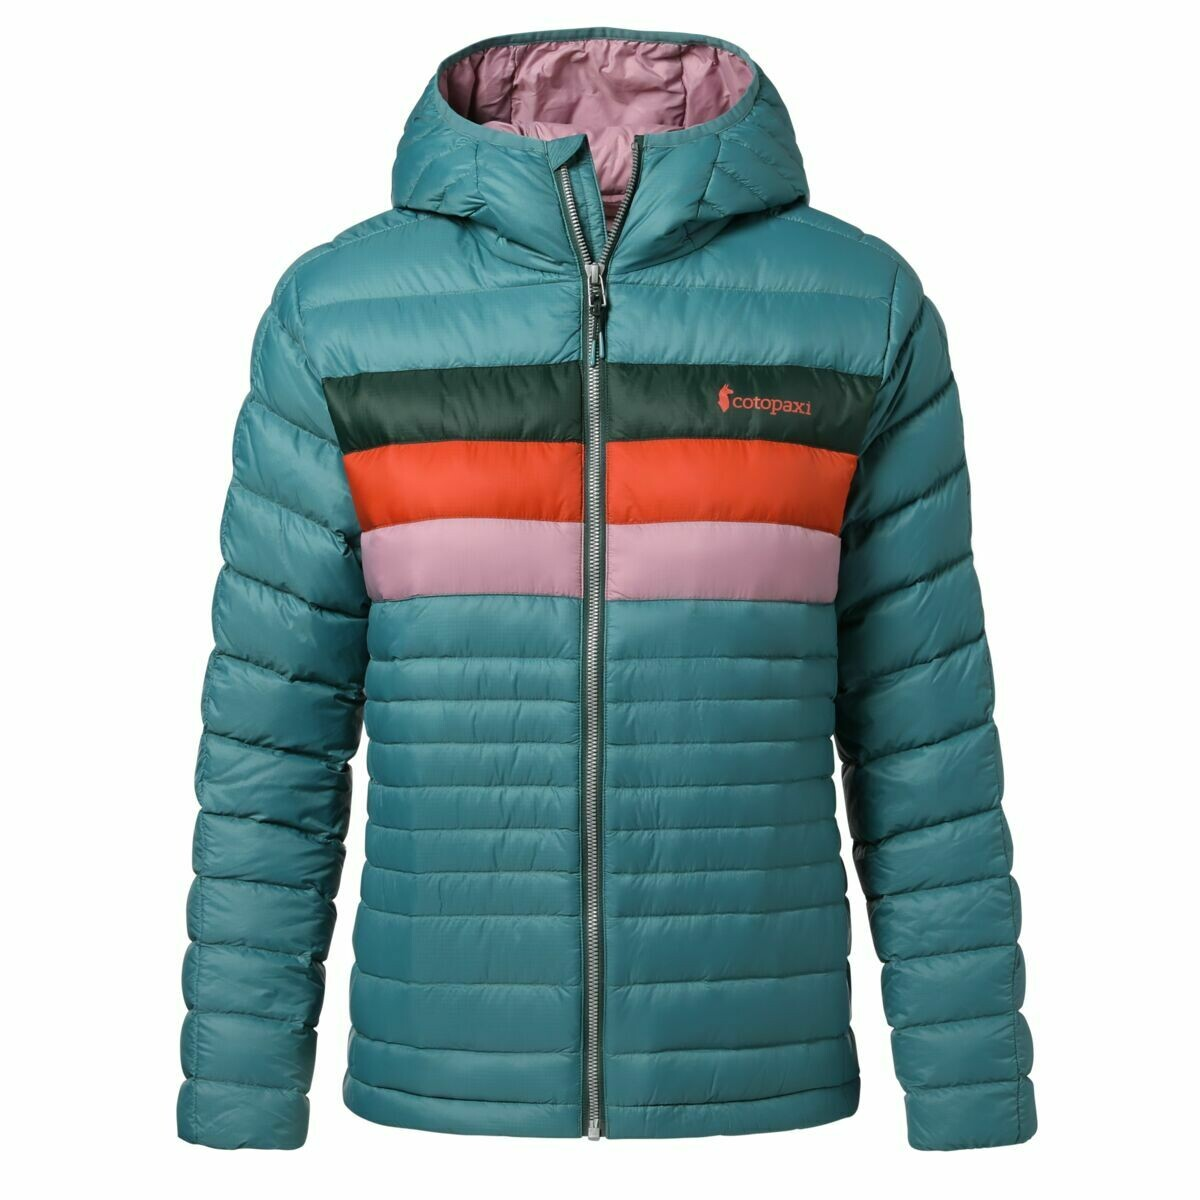 Cotopaxi Fuego Down Hooded Jacket Women's